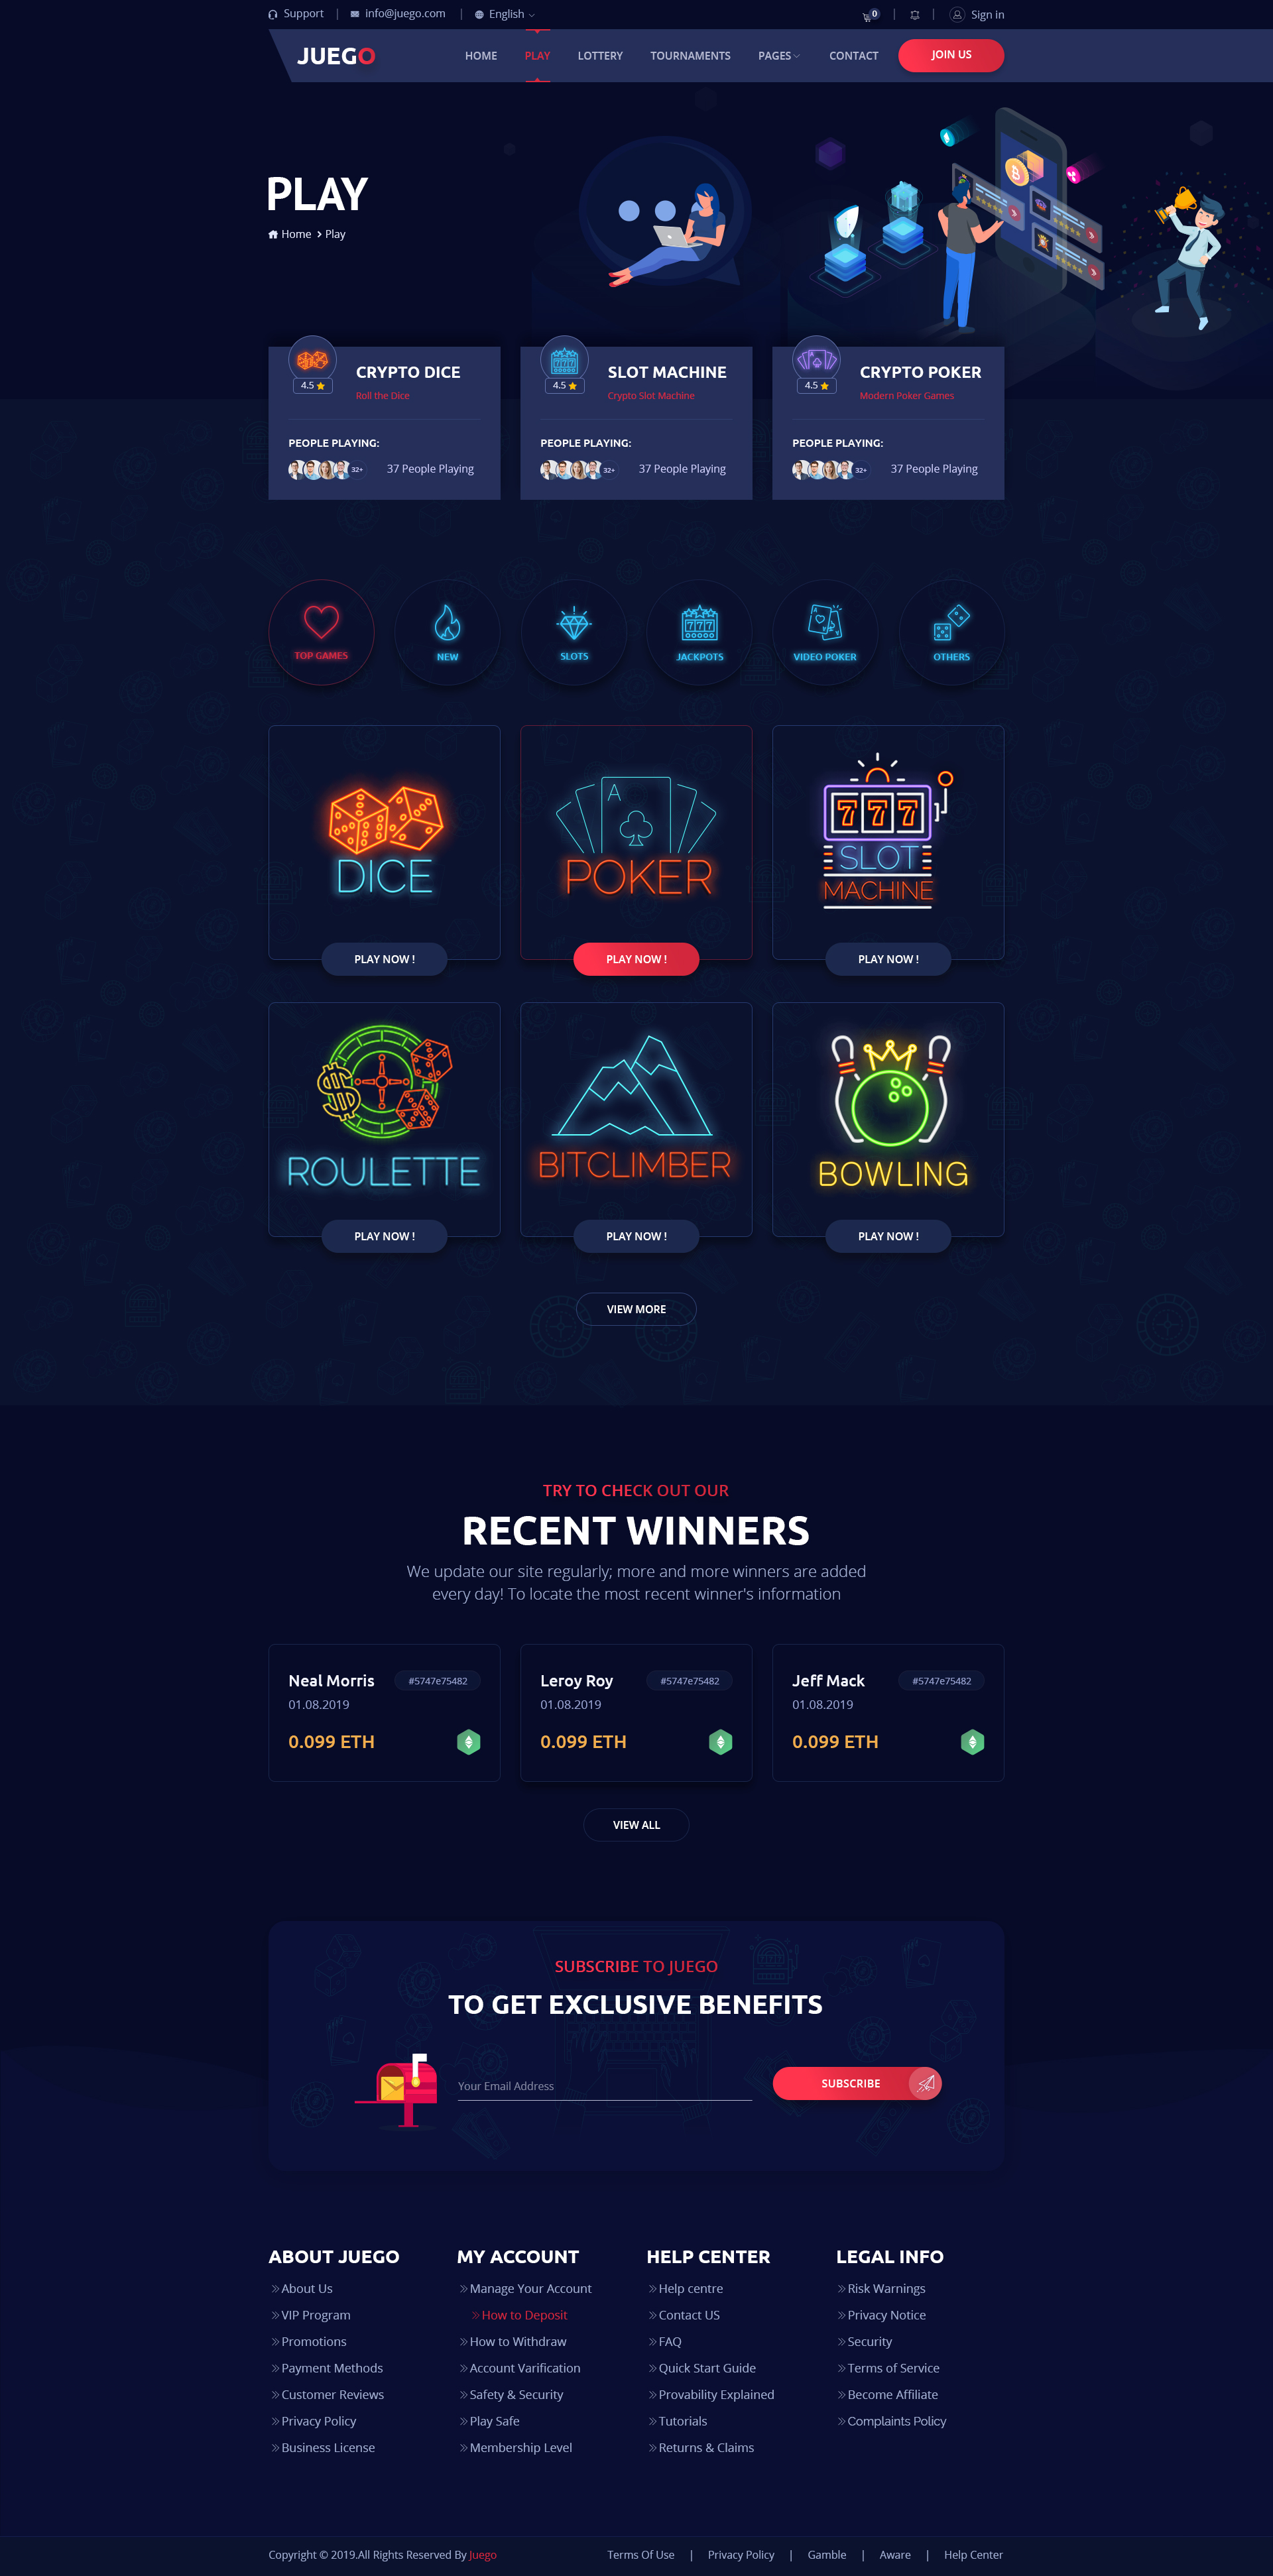 Juego - CryptoGaming Website PSD Templates